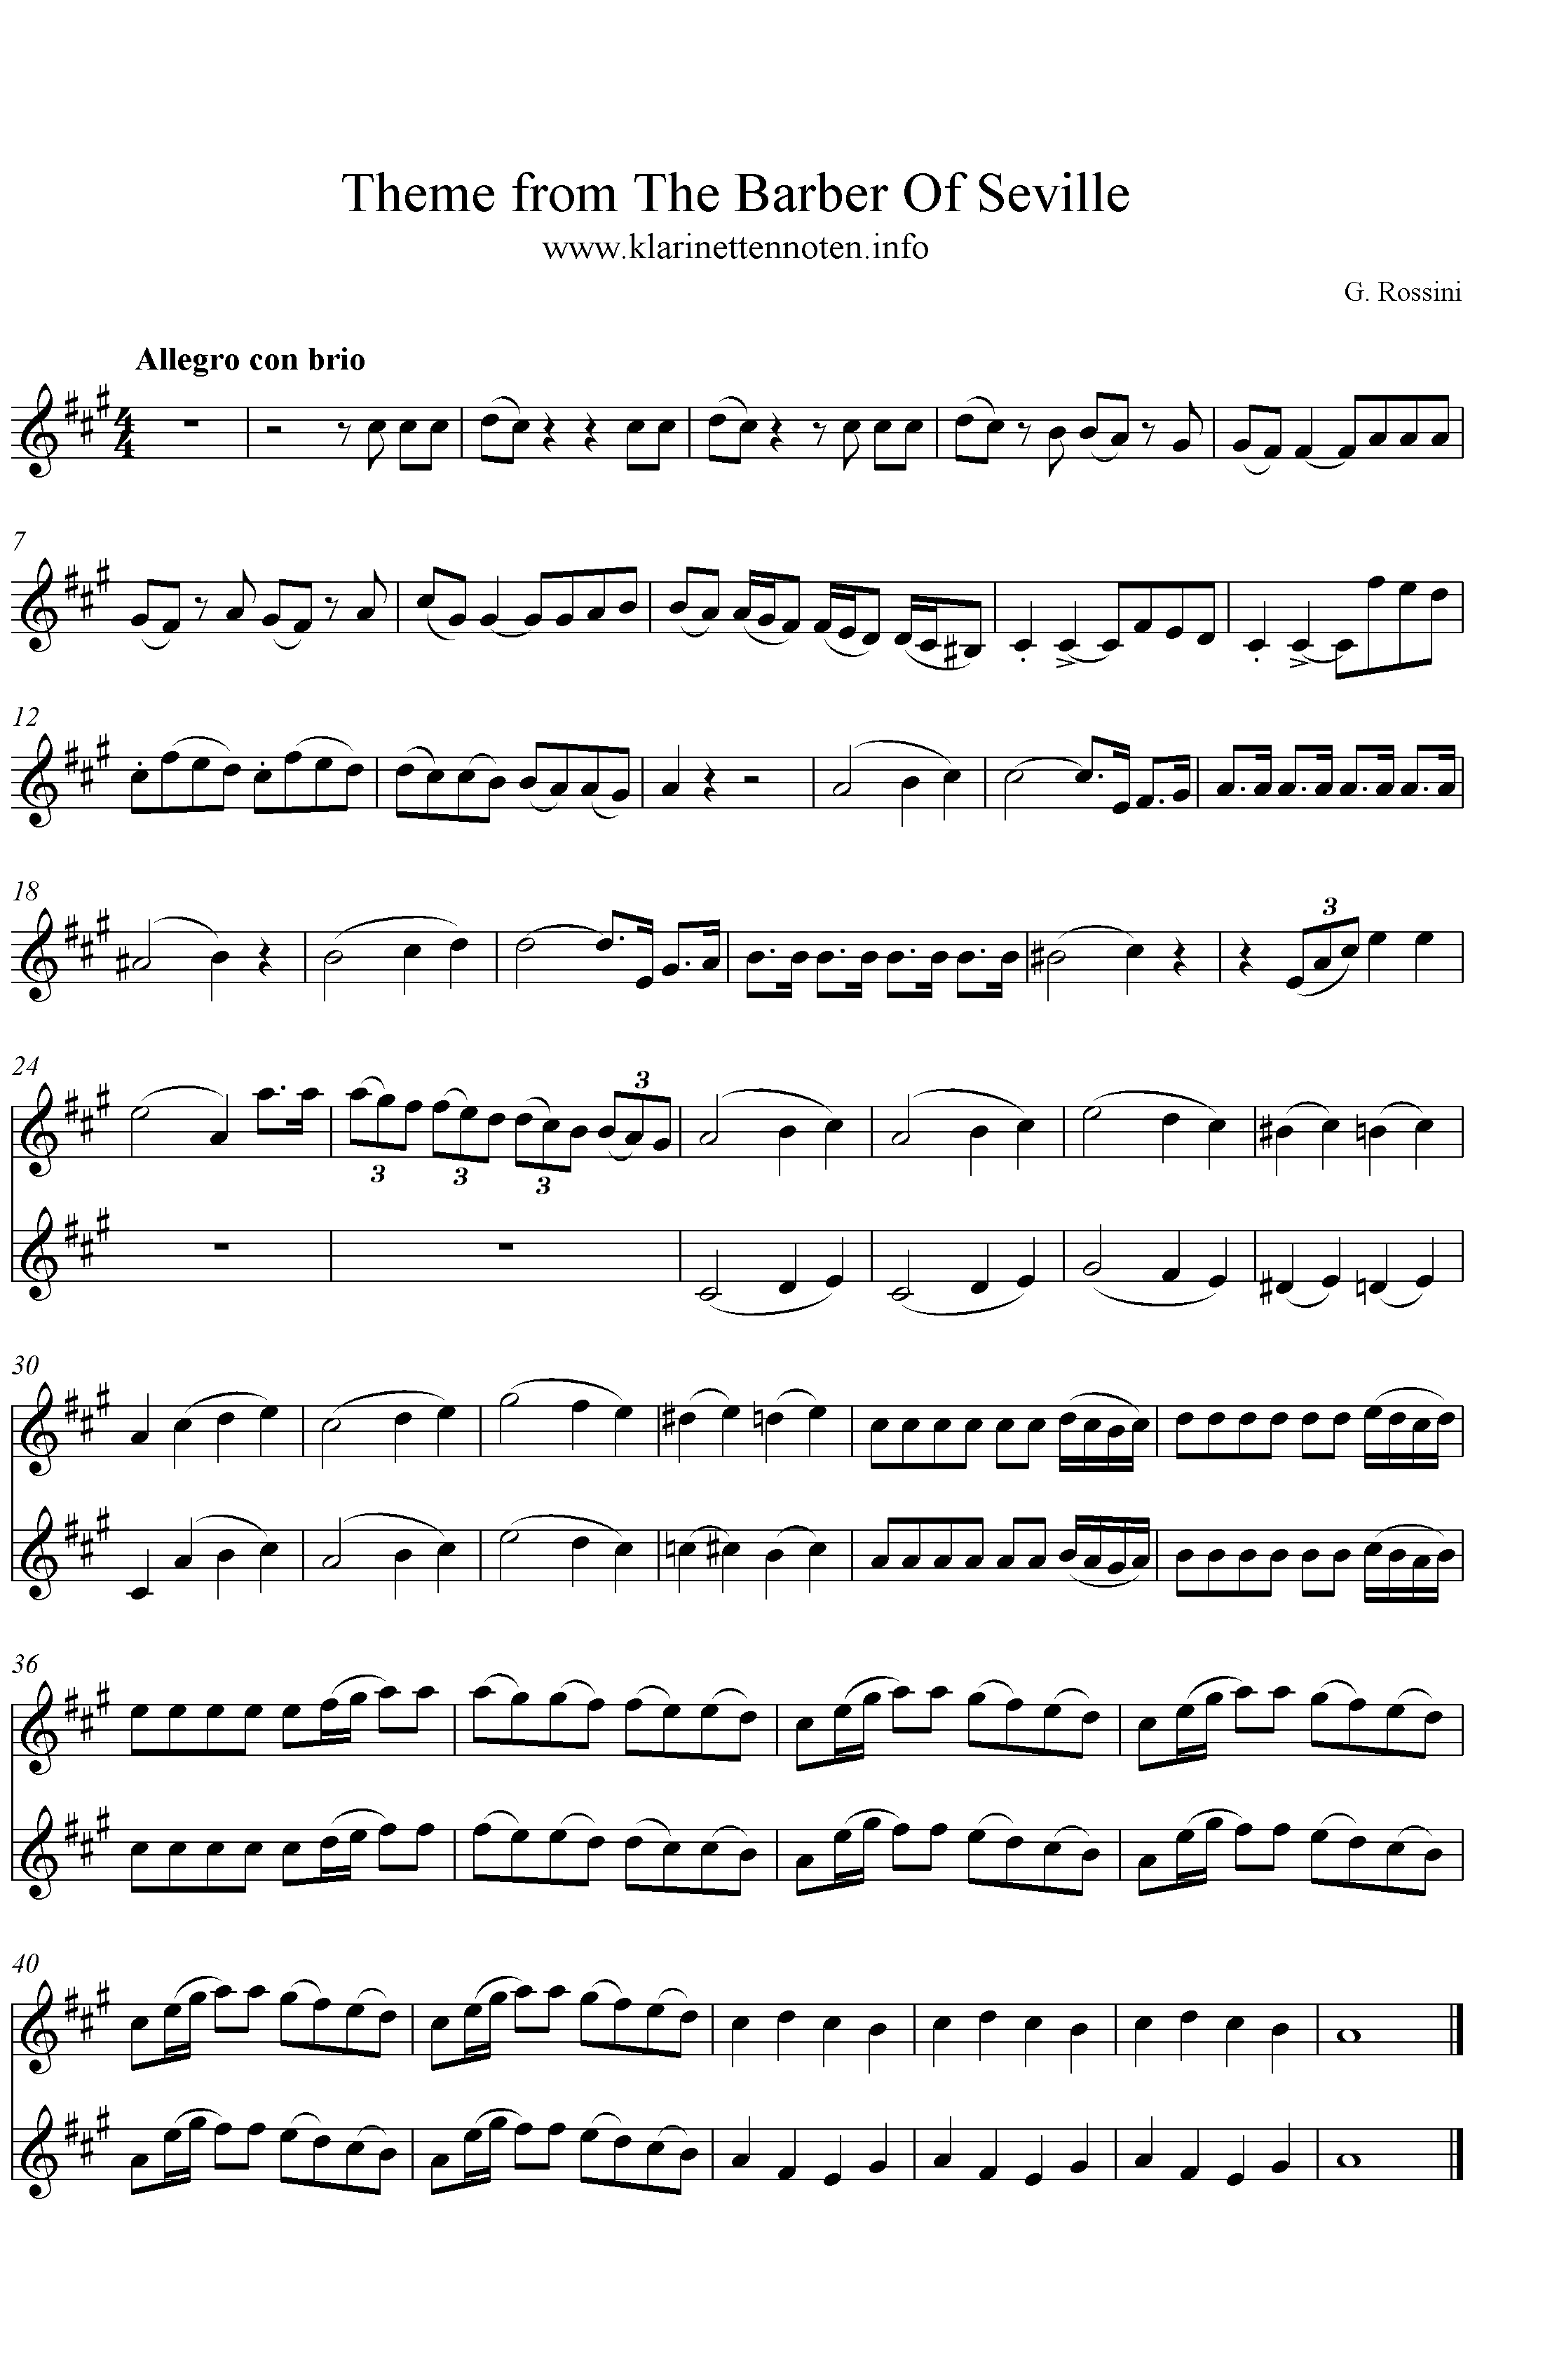 Theme from The Barber Of Sevilee, A-Major